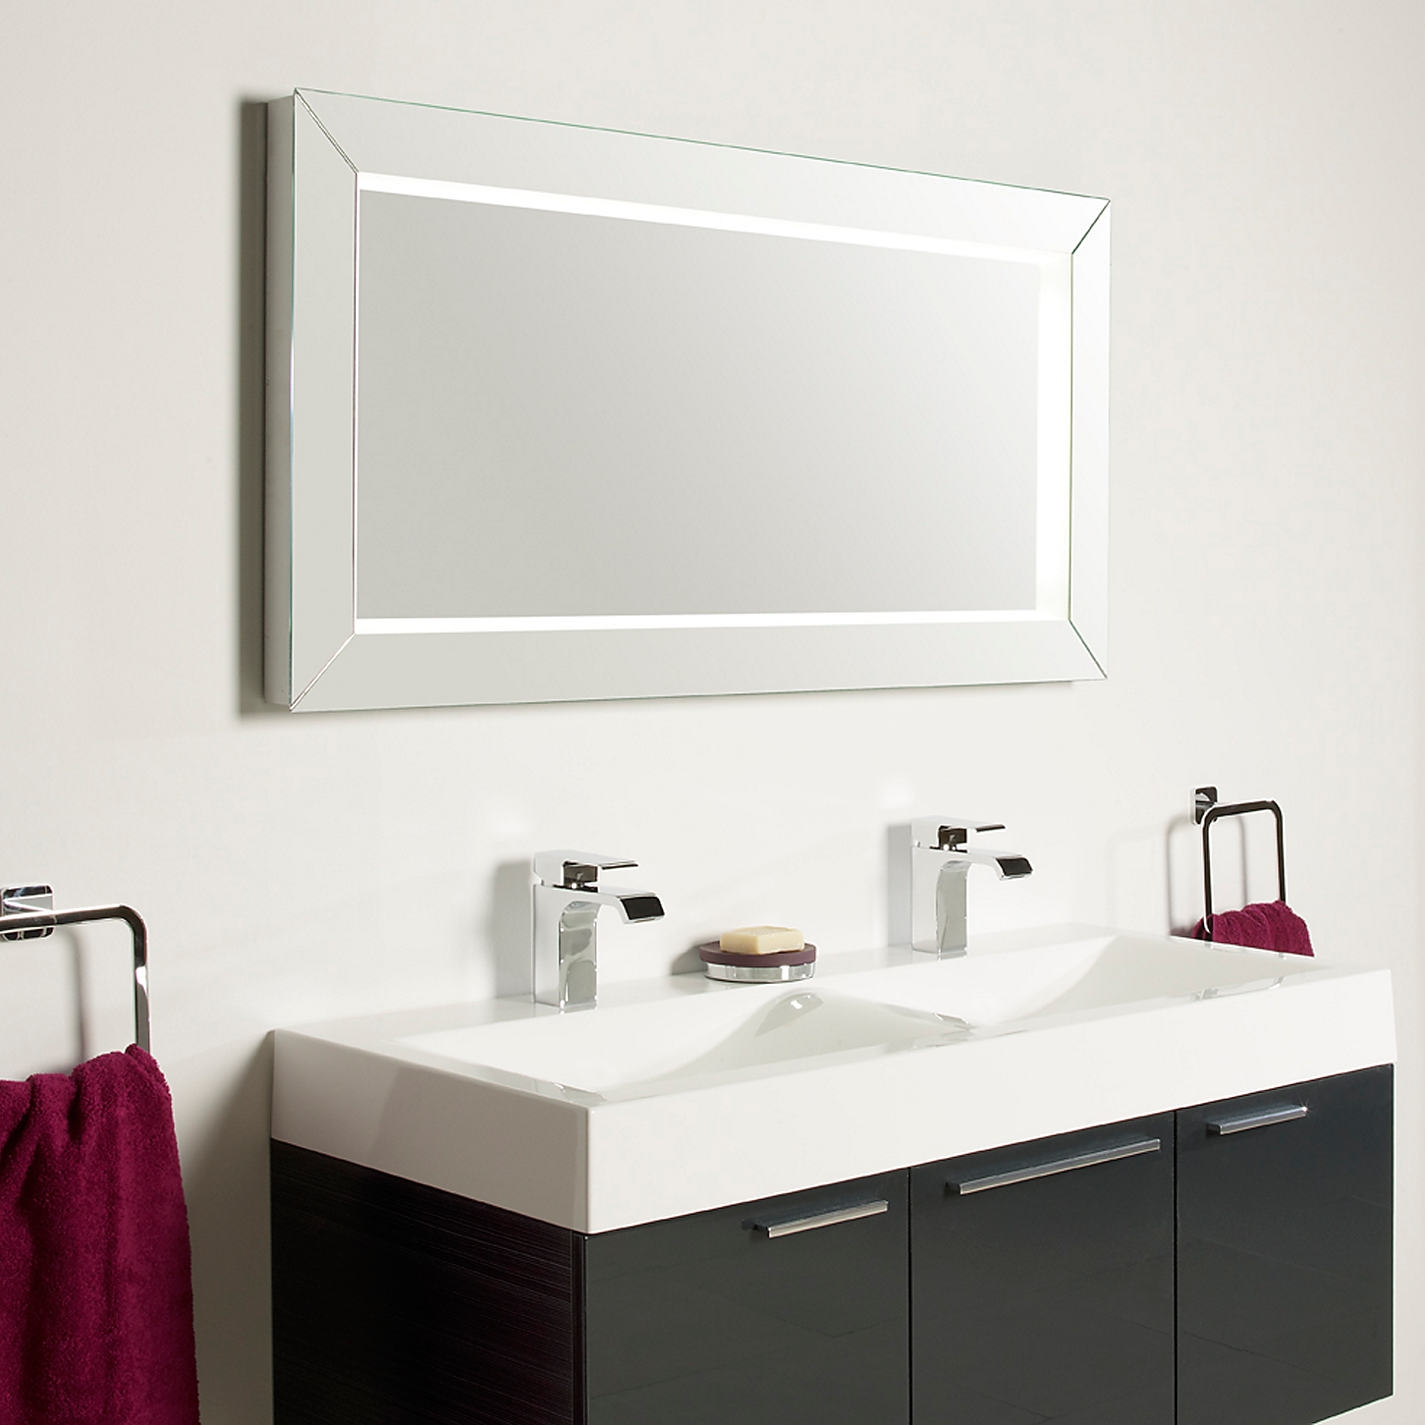 John Lewis Bathroom Mirrors And Cabinets